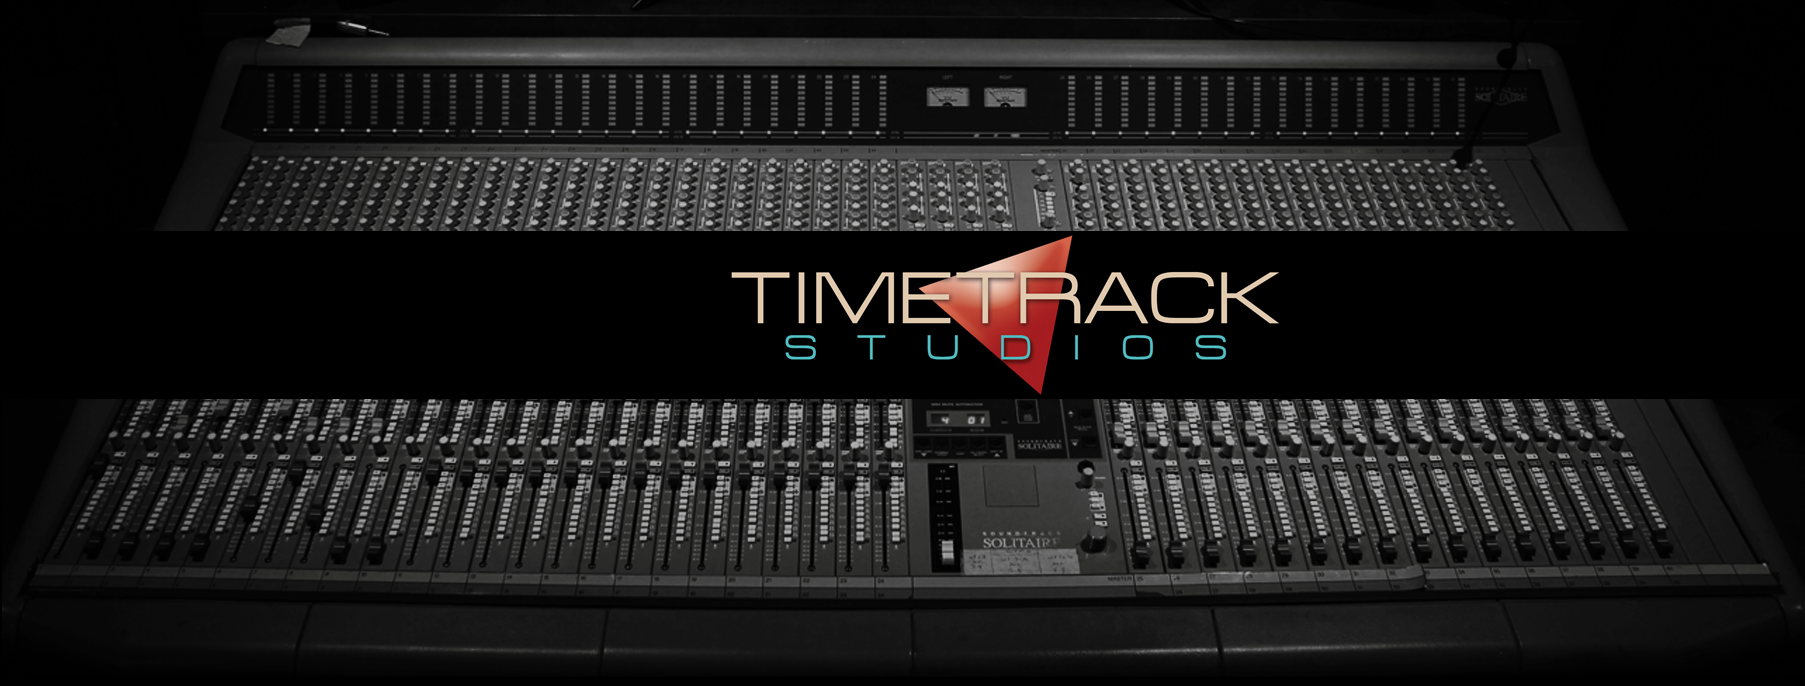 Foto dello studio di registrazione di Time Track Factory